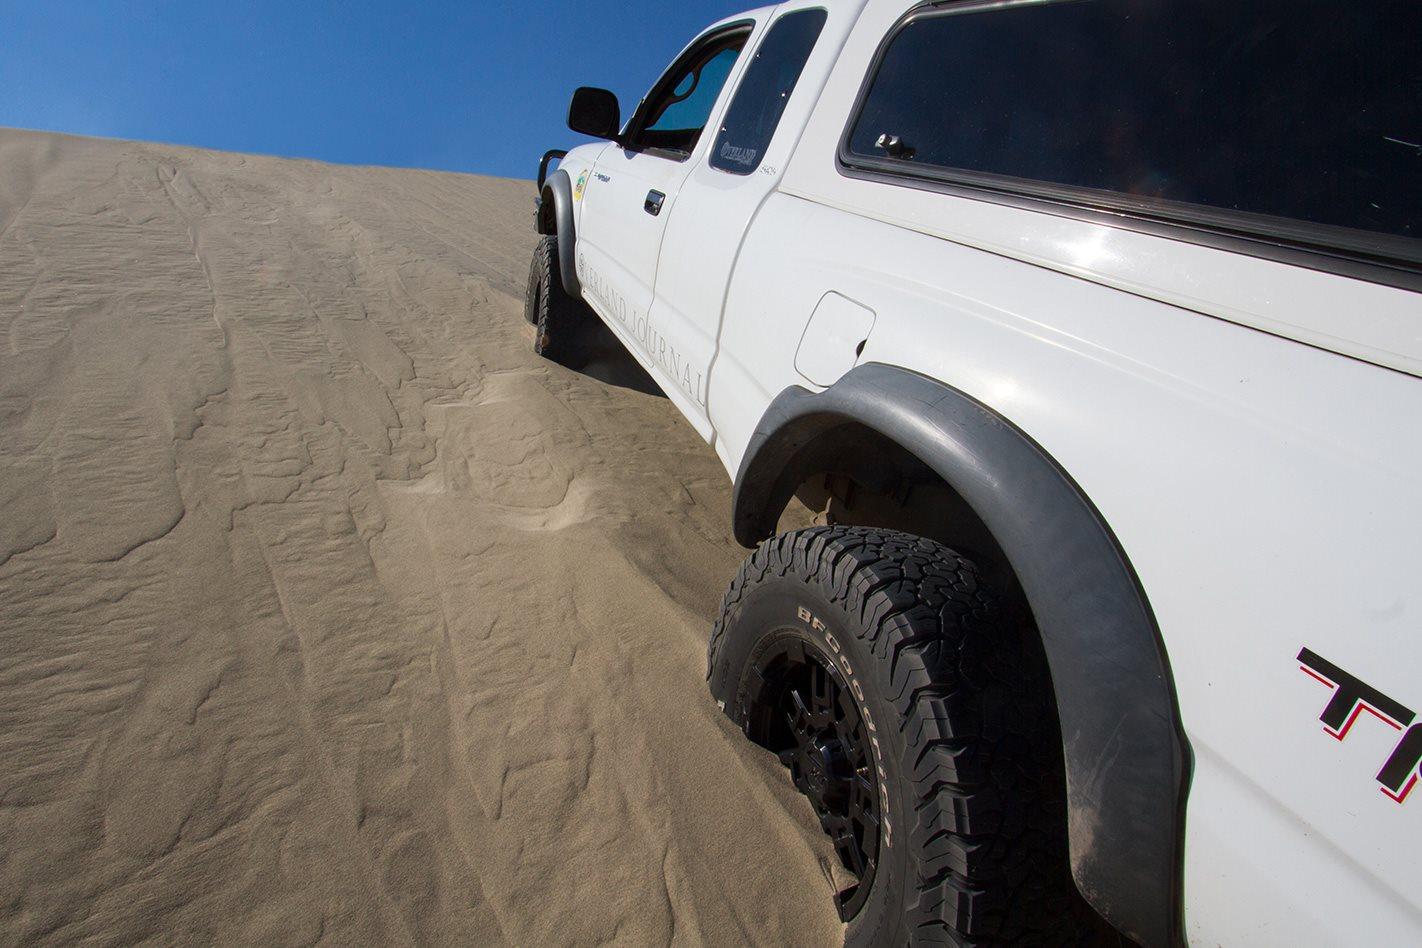 BFGoodrich All-Terrain KO2 tyres on sand